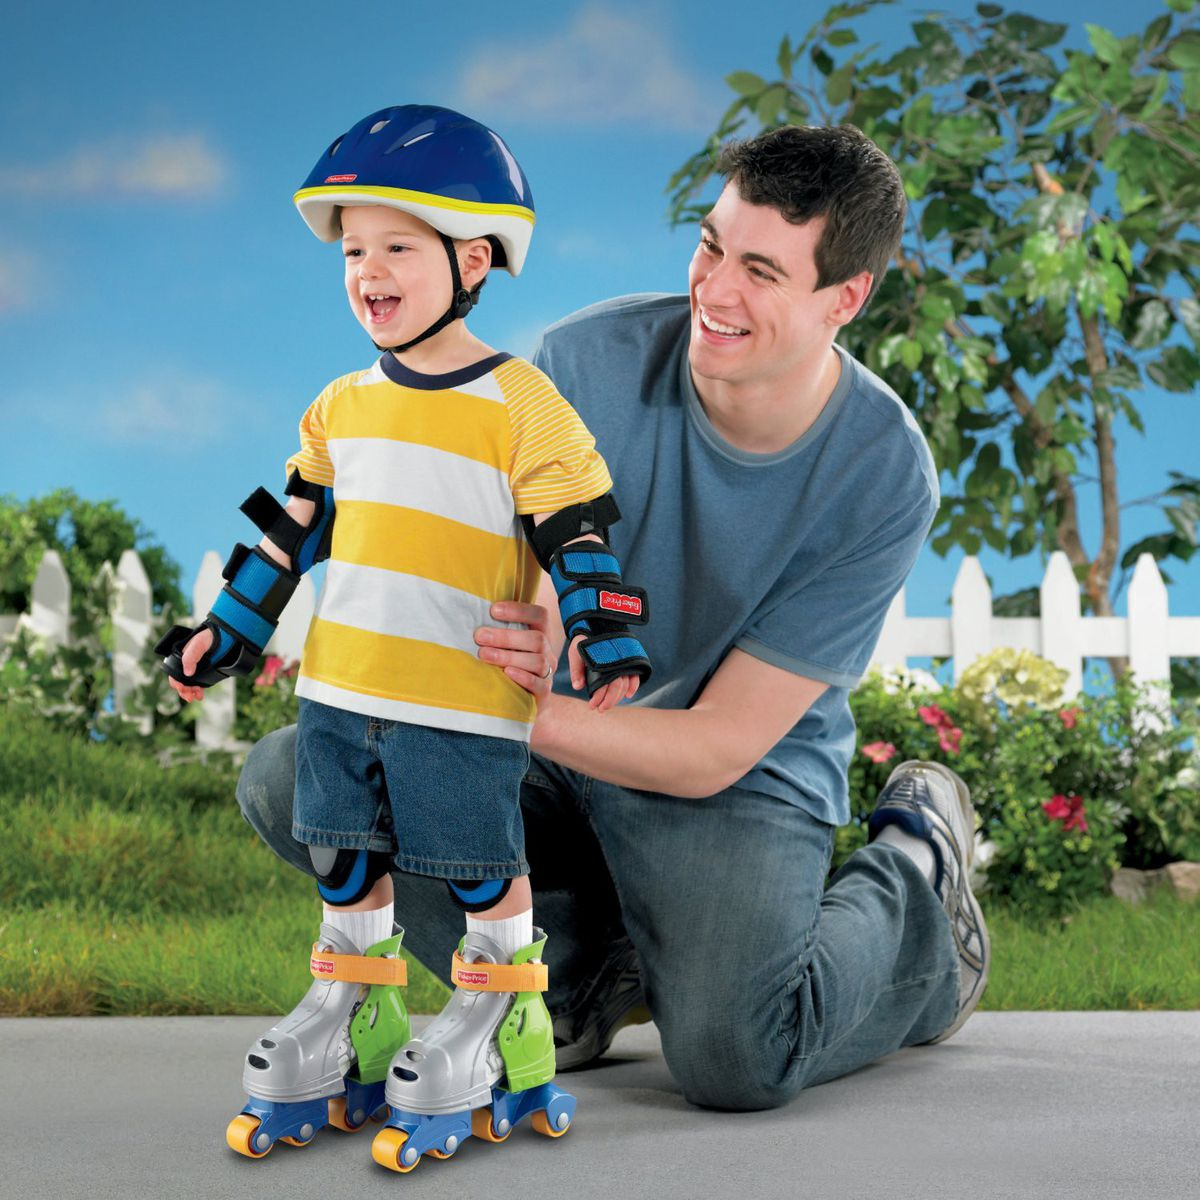 Roller skates south africa - Fisher Price Grow With Me 1 2 3 Inline Skates